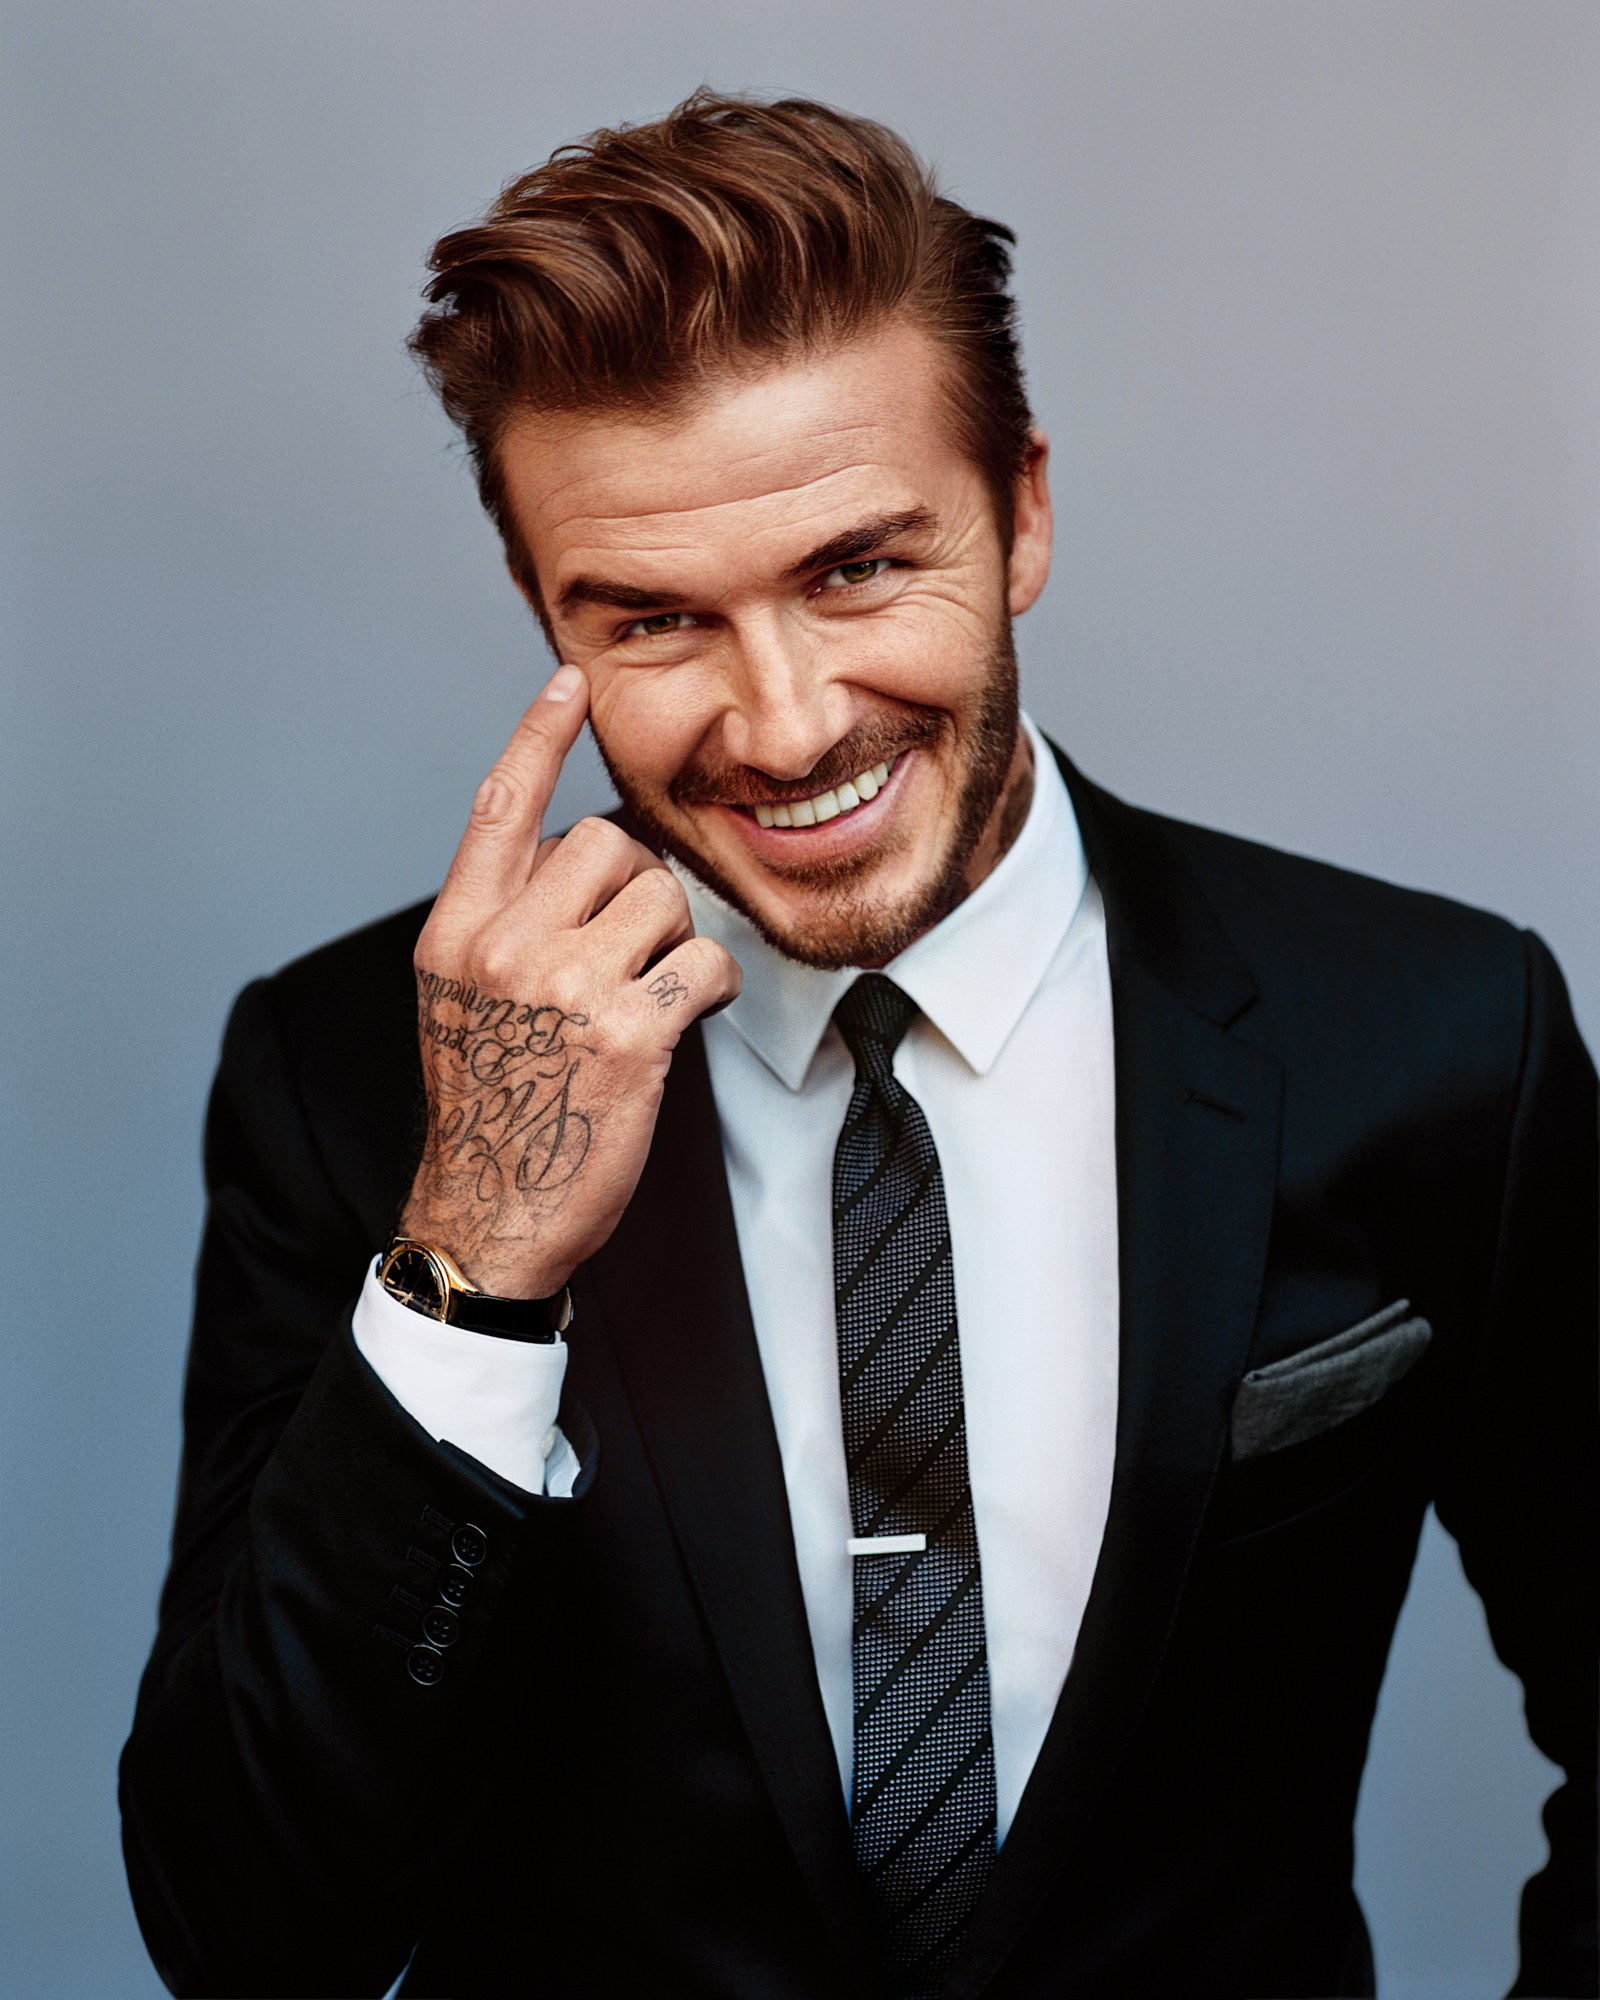 The latest Tweets from David Beckham (@DaviBeckham24x7). Follow us to get the latest news about David Beckham. Canada, Hamilton.